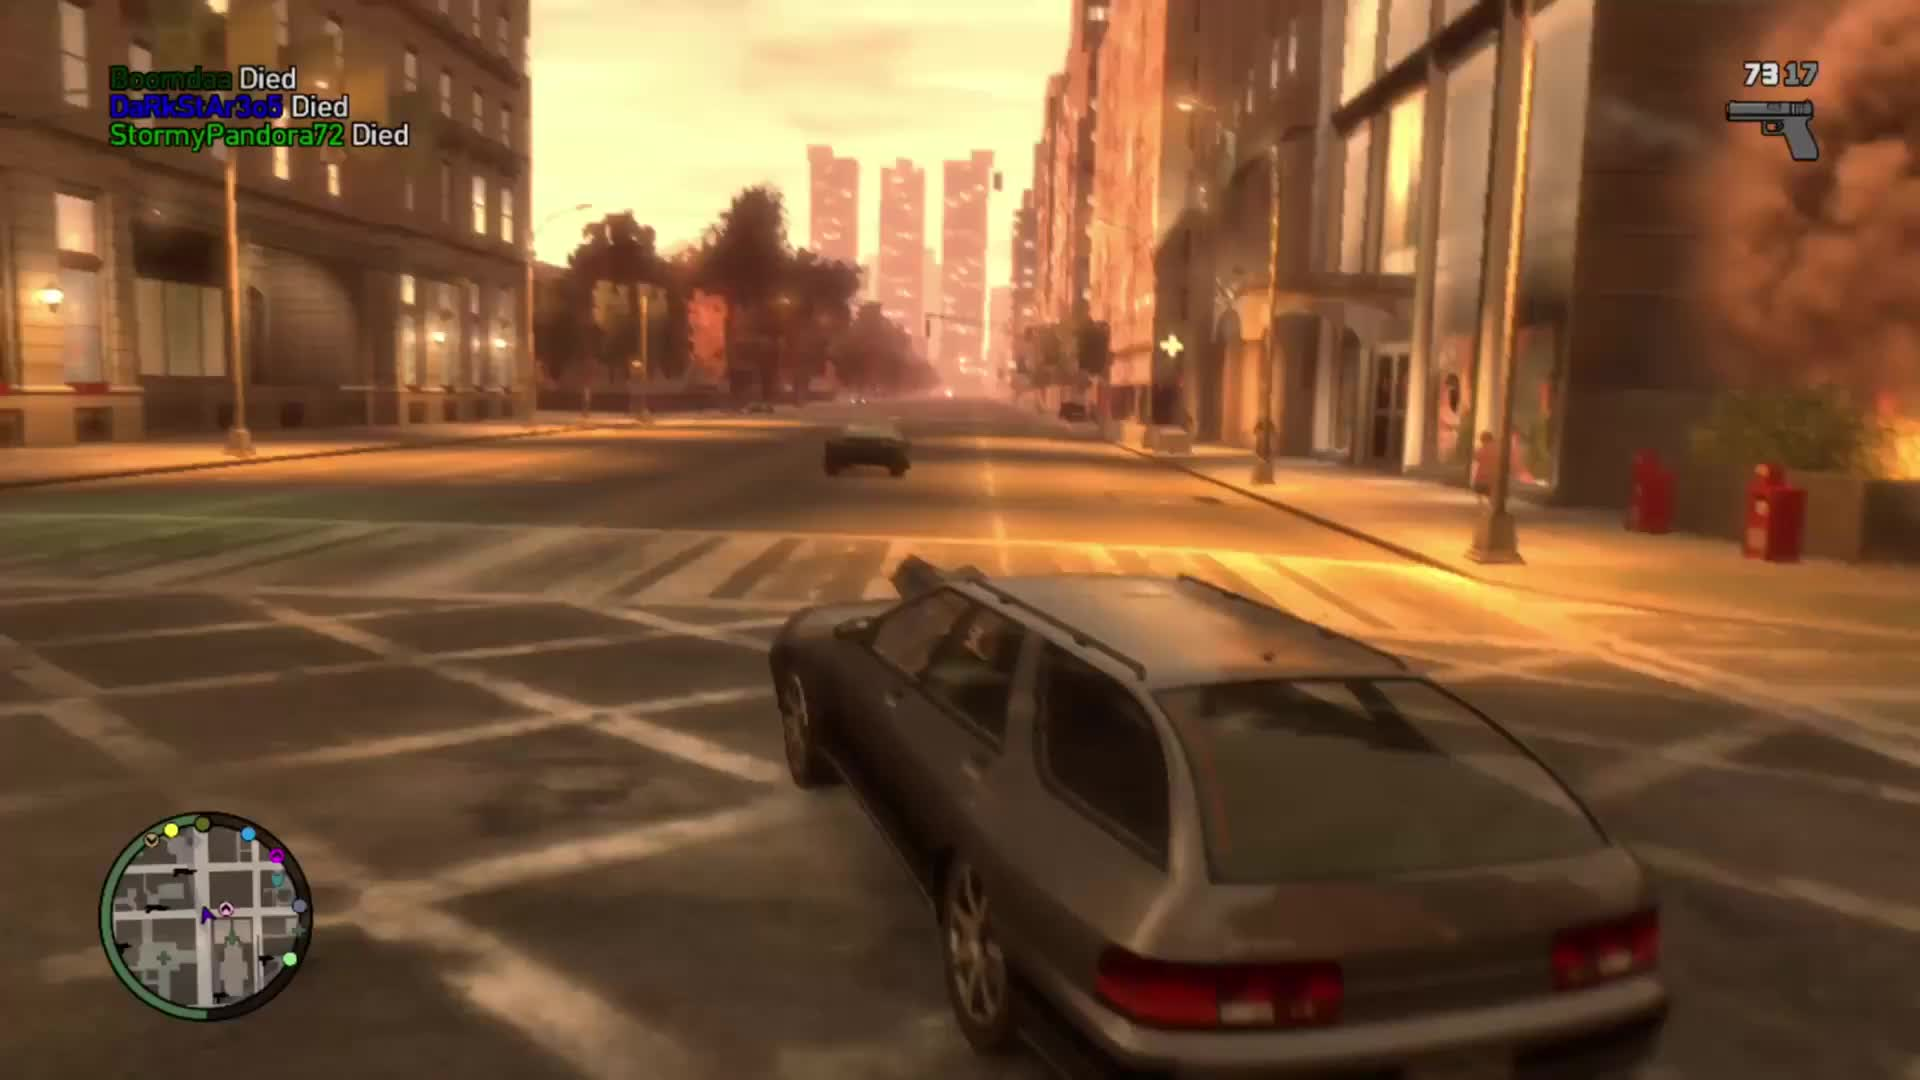 ,grand theft auto, Gta, gaming, modding, mods, xbox, xbox one, Trying to outrun a modder GIFs